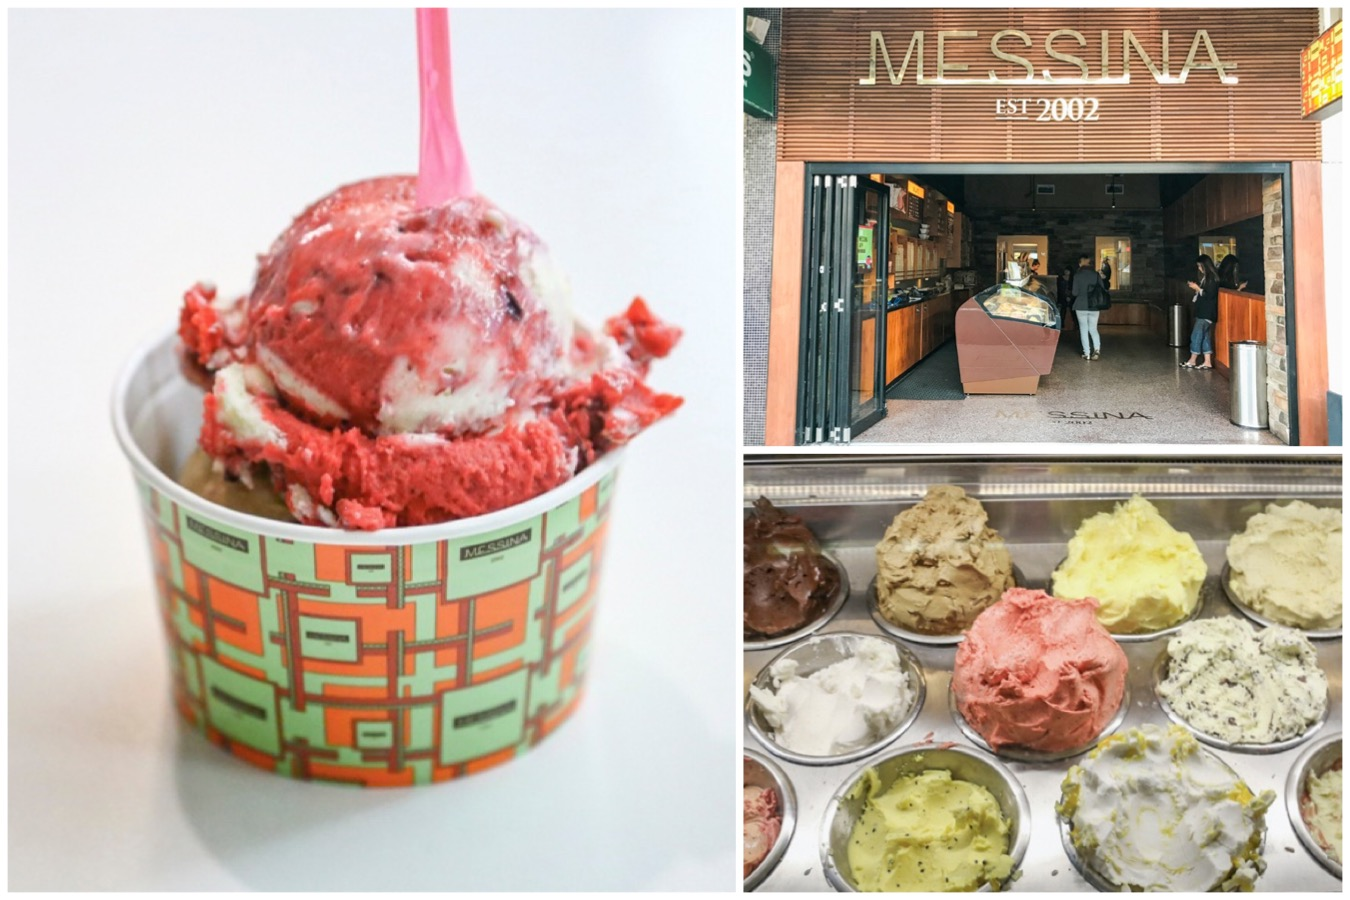 Gelato Messina - The Most Popular Gelato Shop In Sydney Australia, With Several Funky Flavours